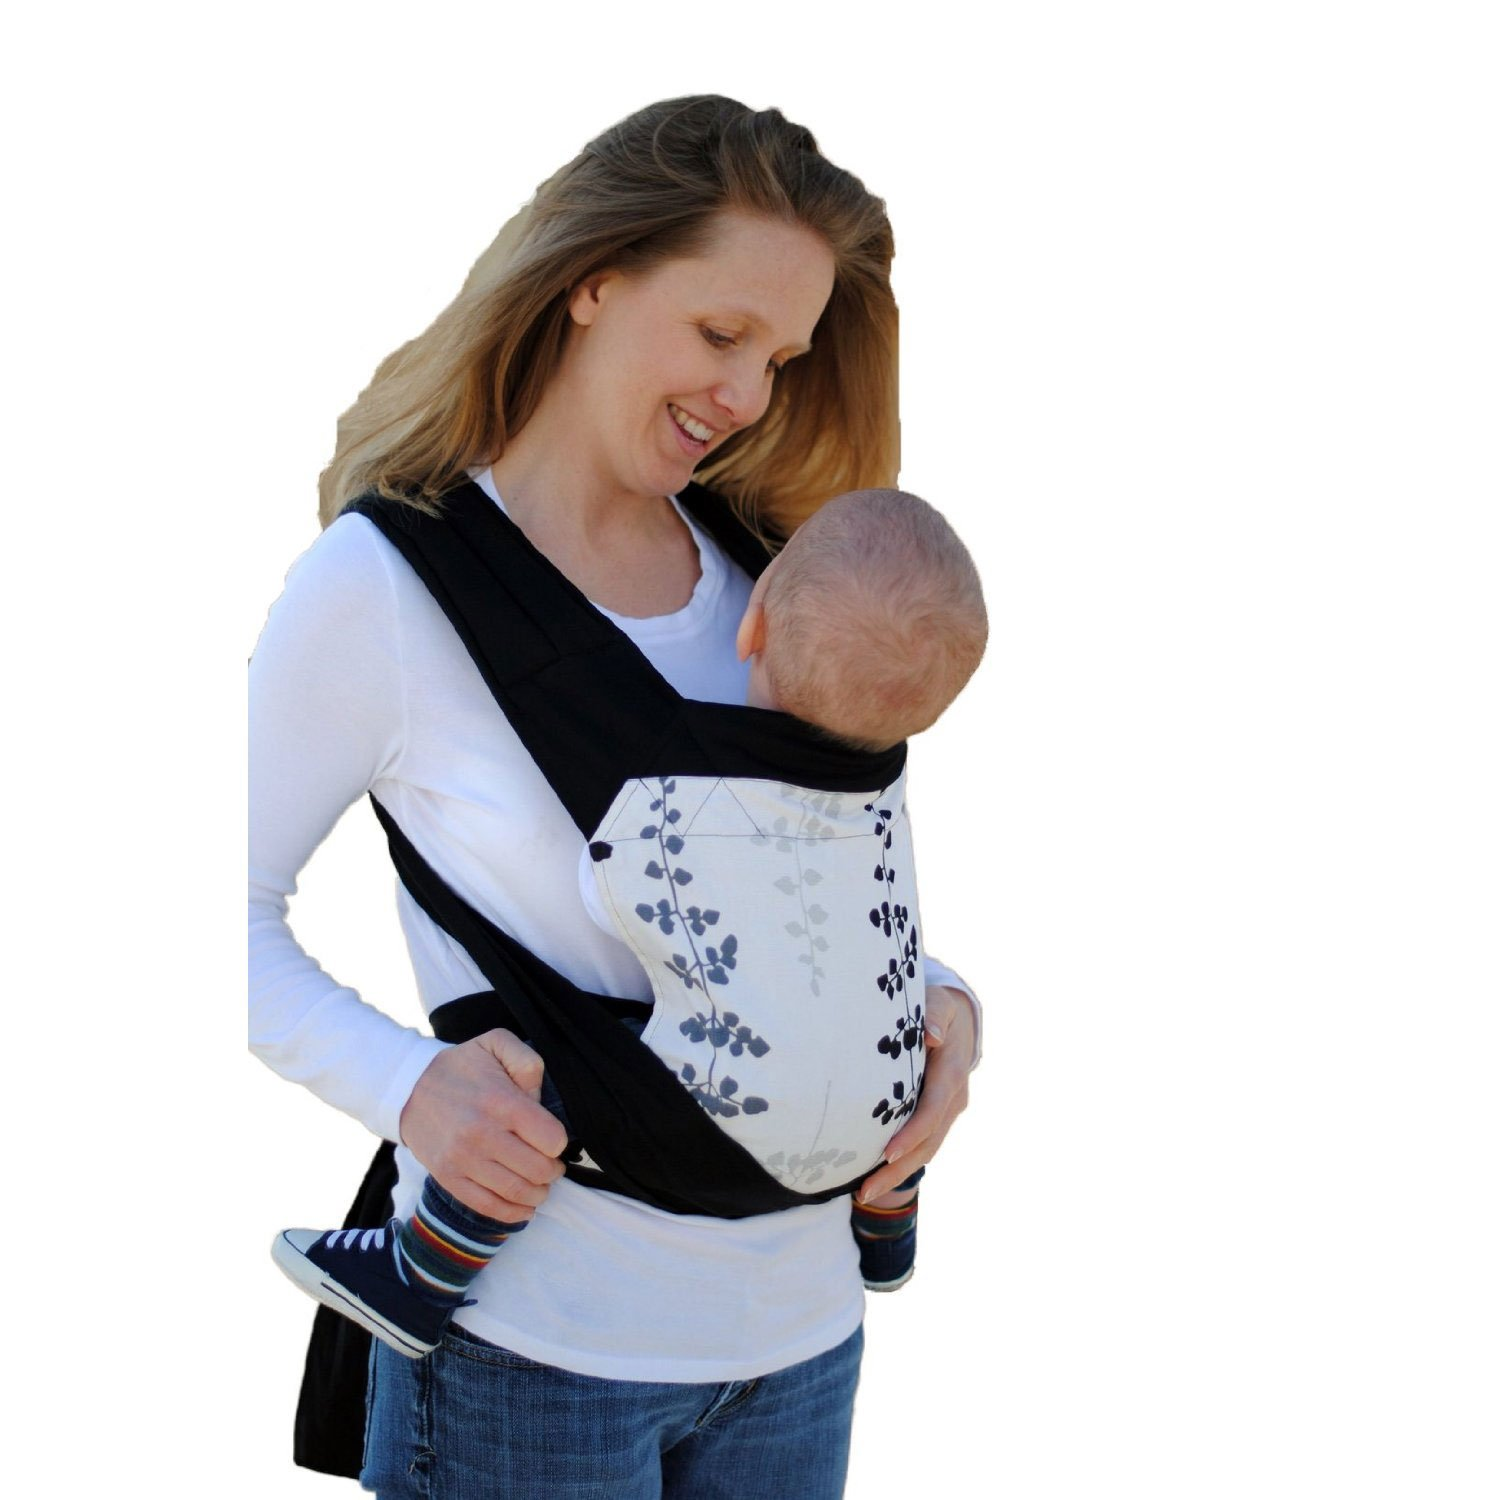 freehand baby carrier